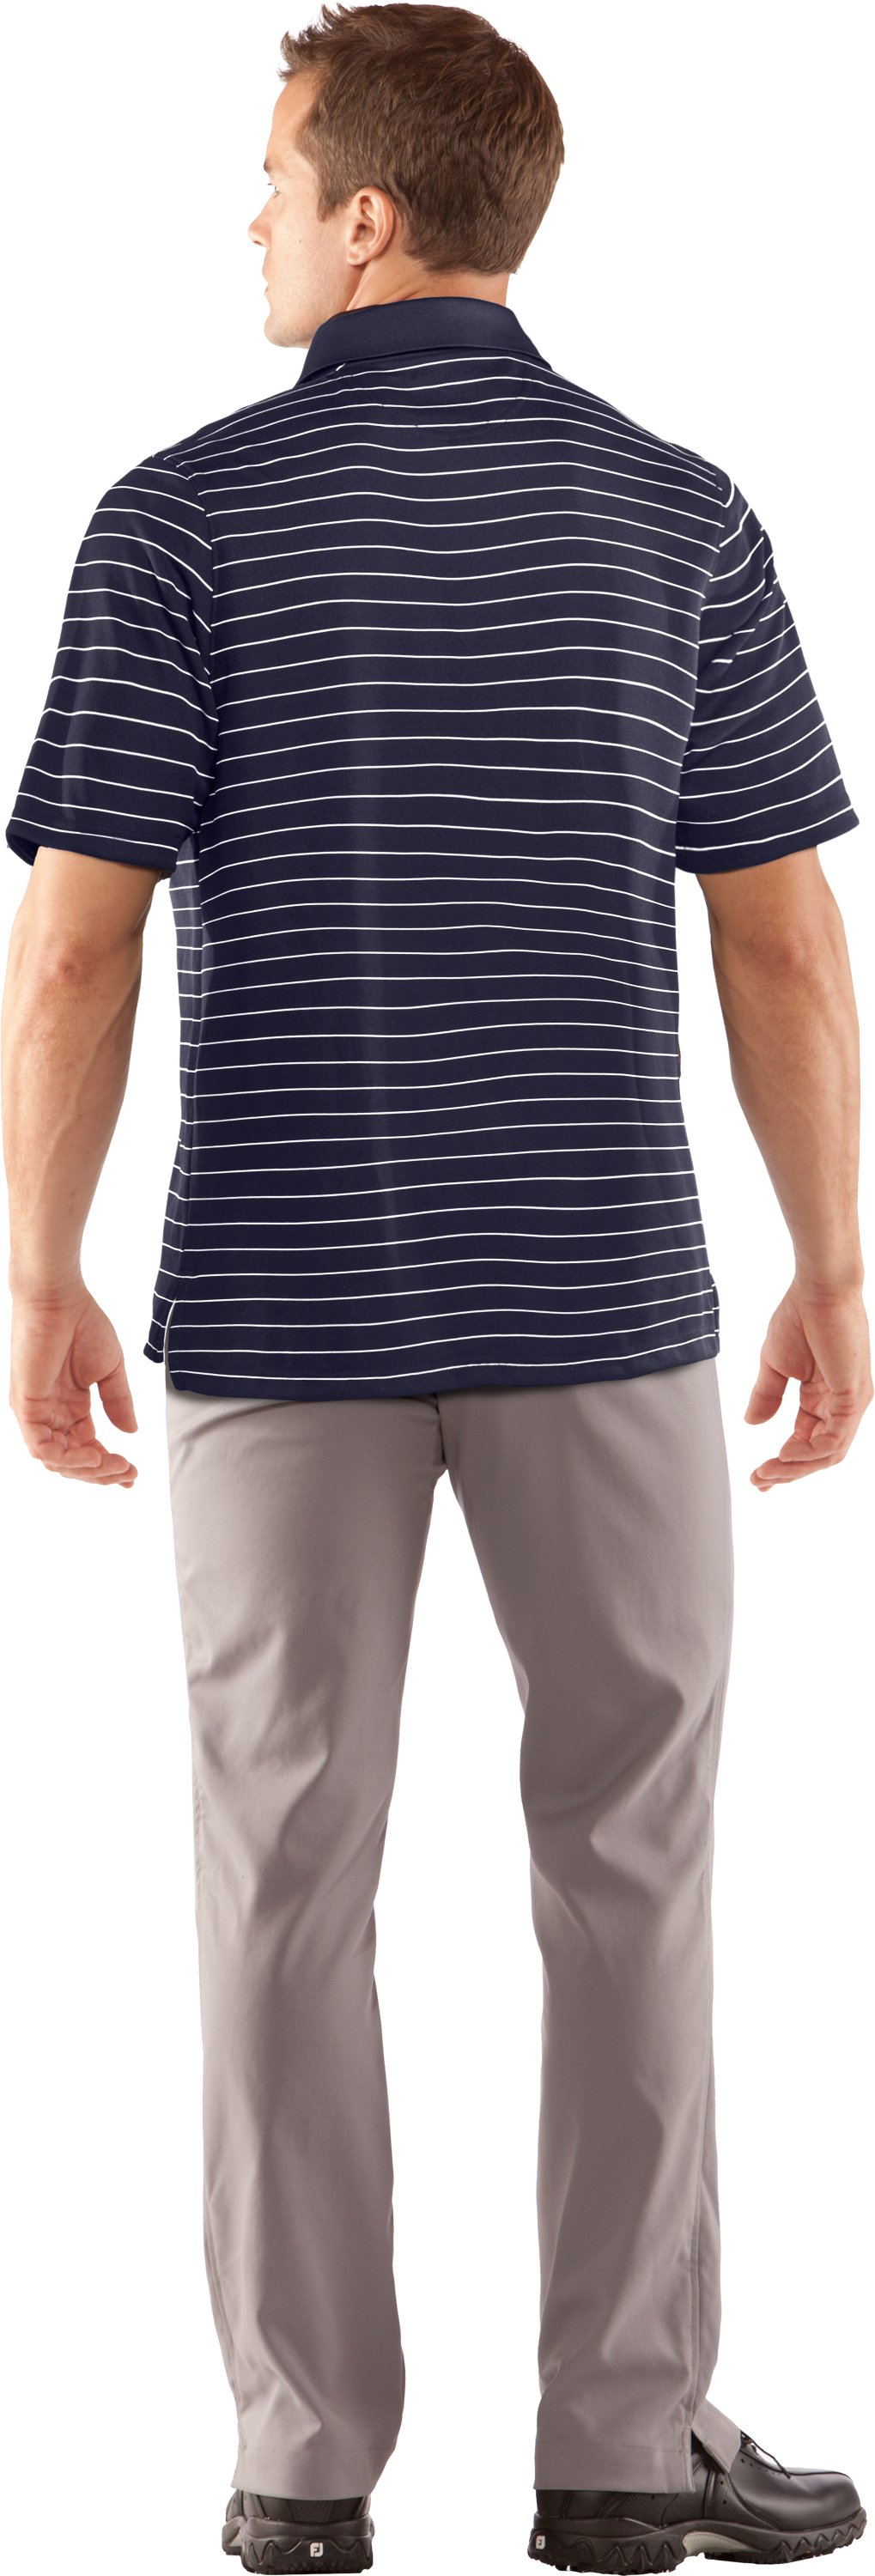 Men's Tottenham Hotspur Draw Stripe Polo, Midnight Navy, Back